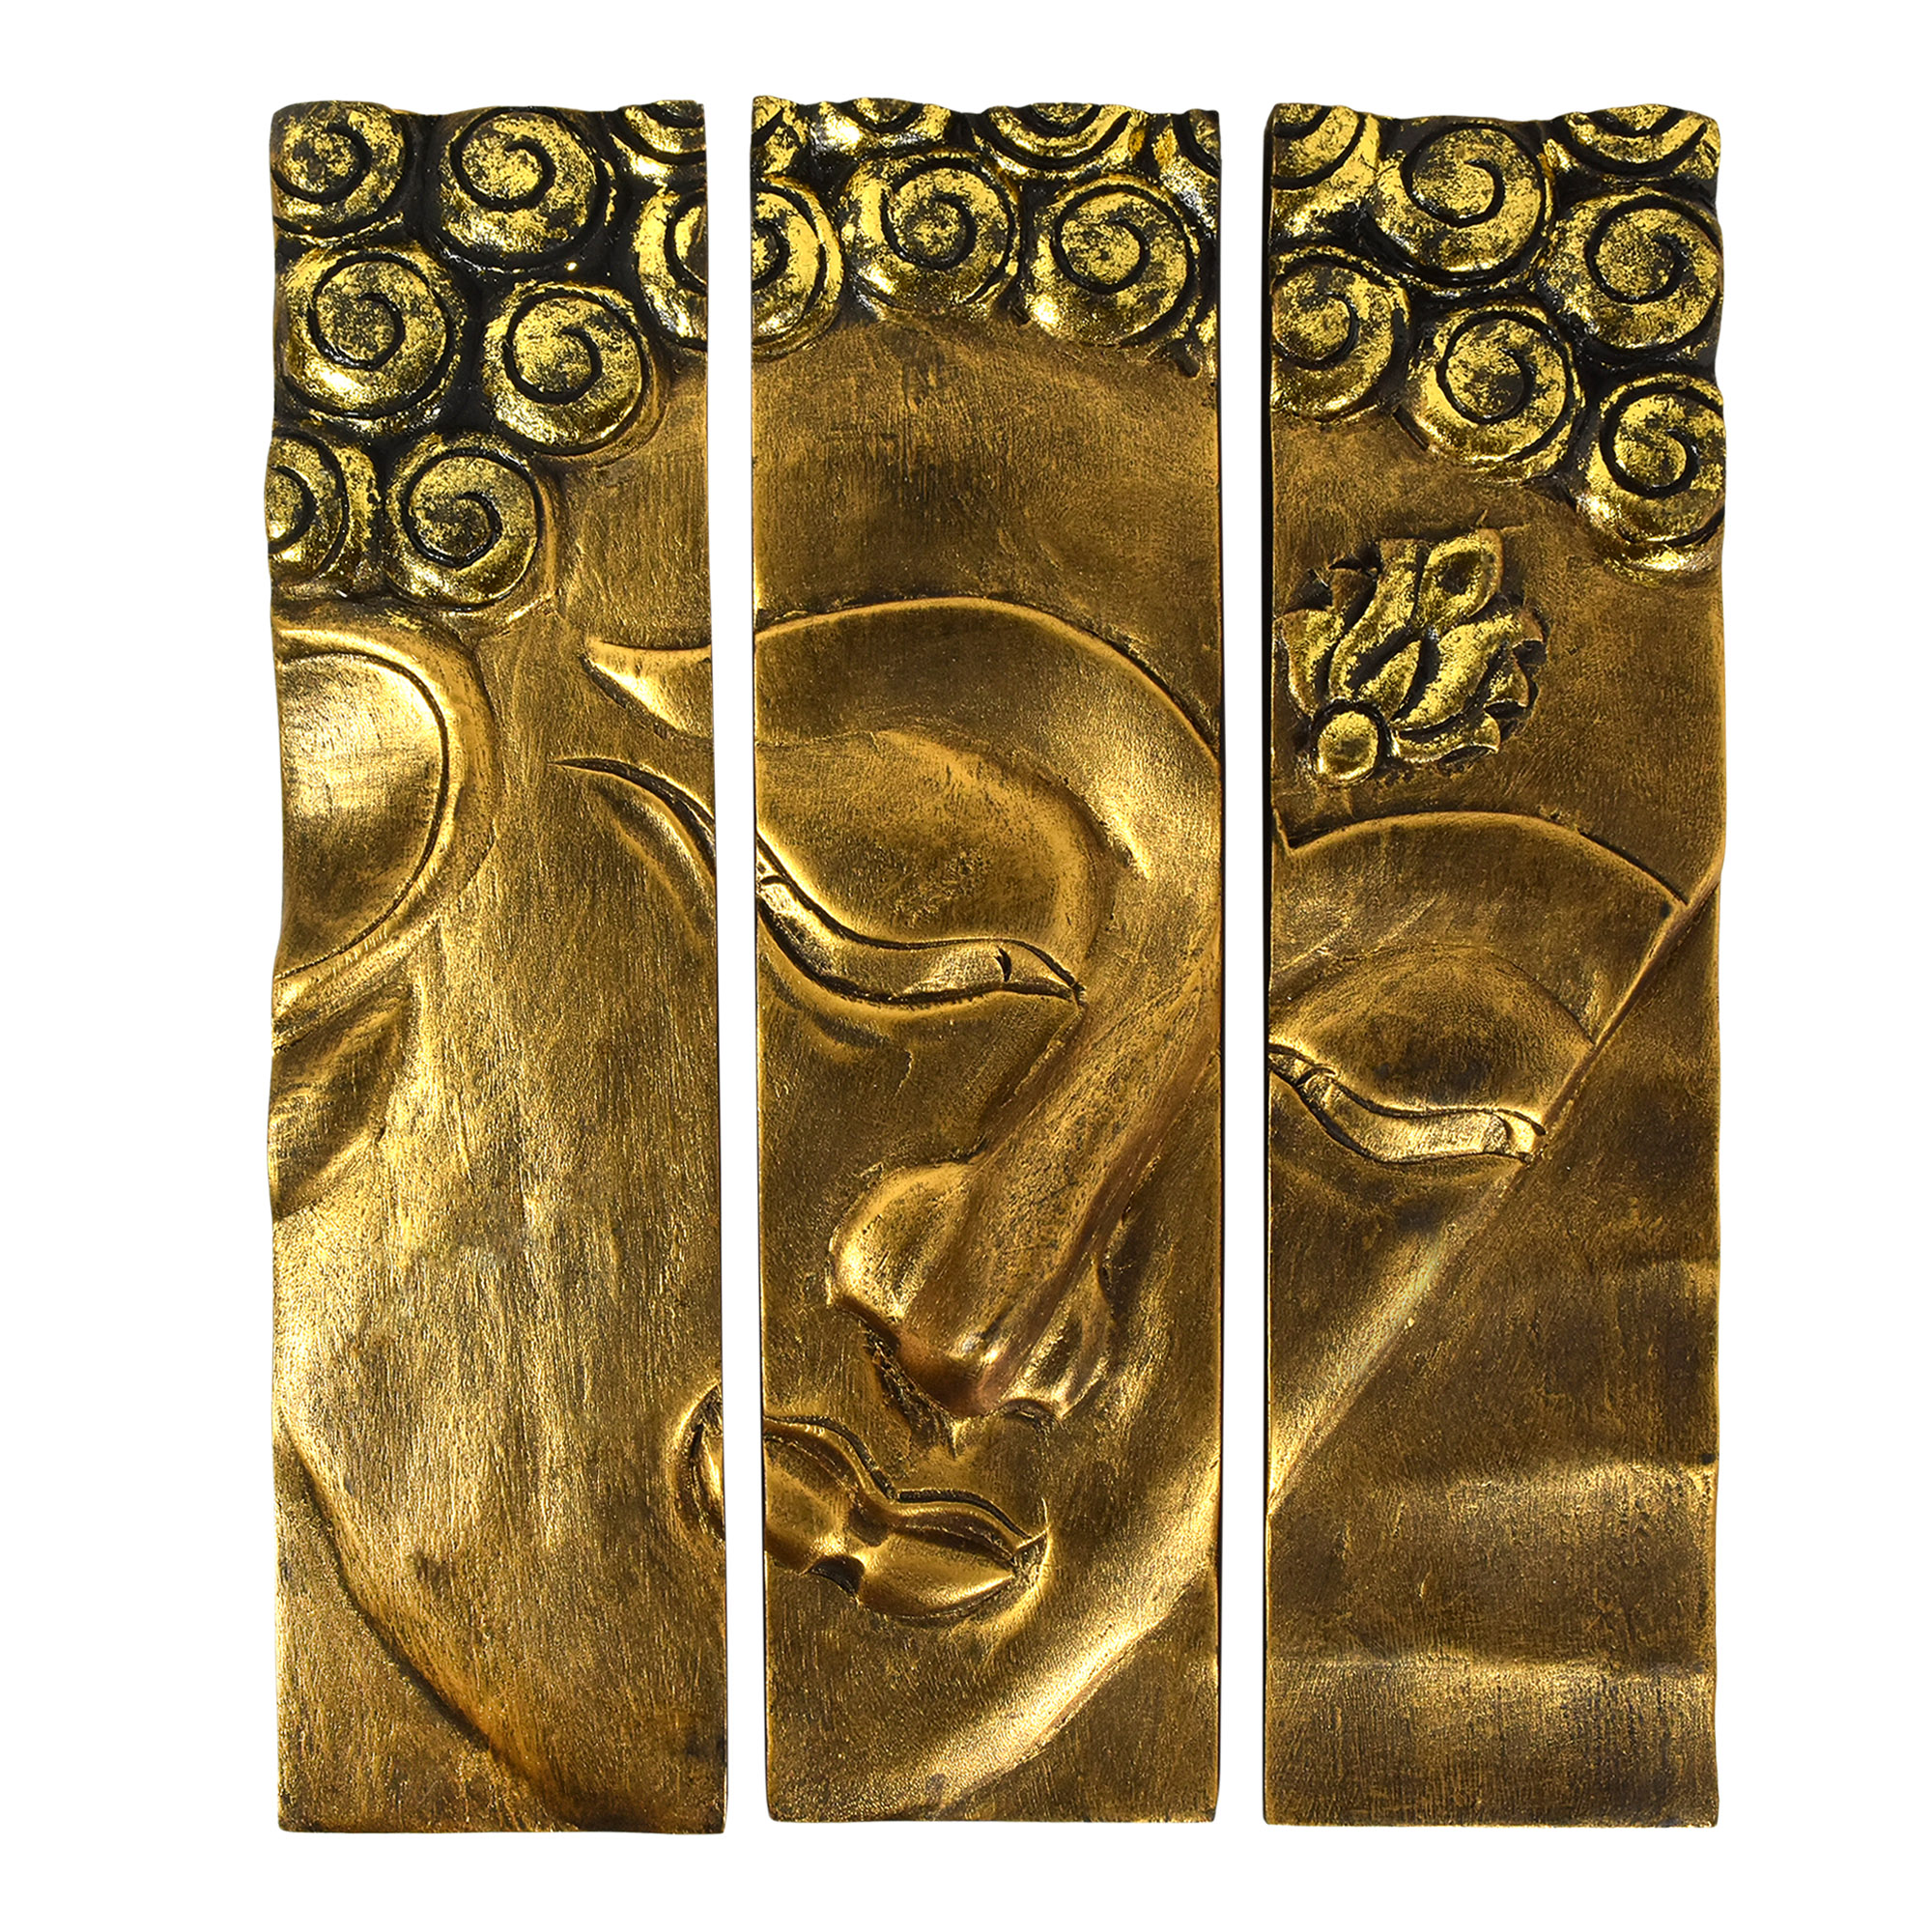 This Three Paneled Peaceful Buddha Face Is Masterfully Crafted By Local Thai Thanat From Environmentally Sustainable Reclaimed Rain Tree Wood